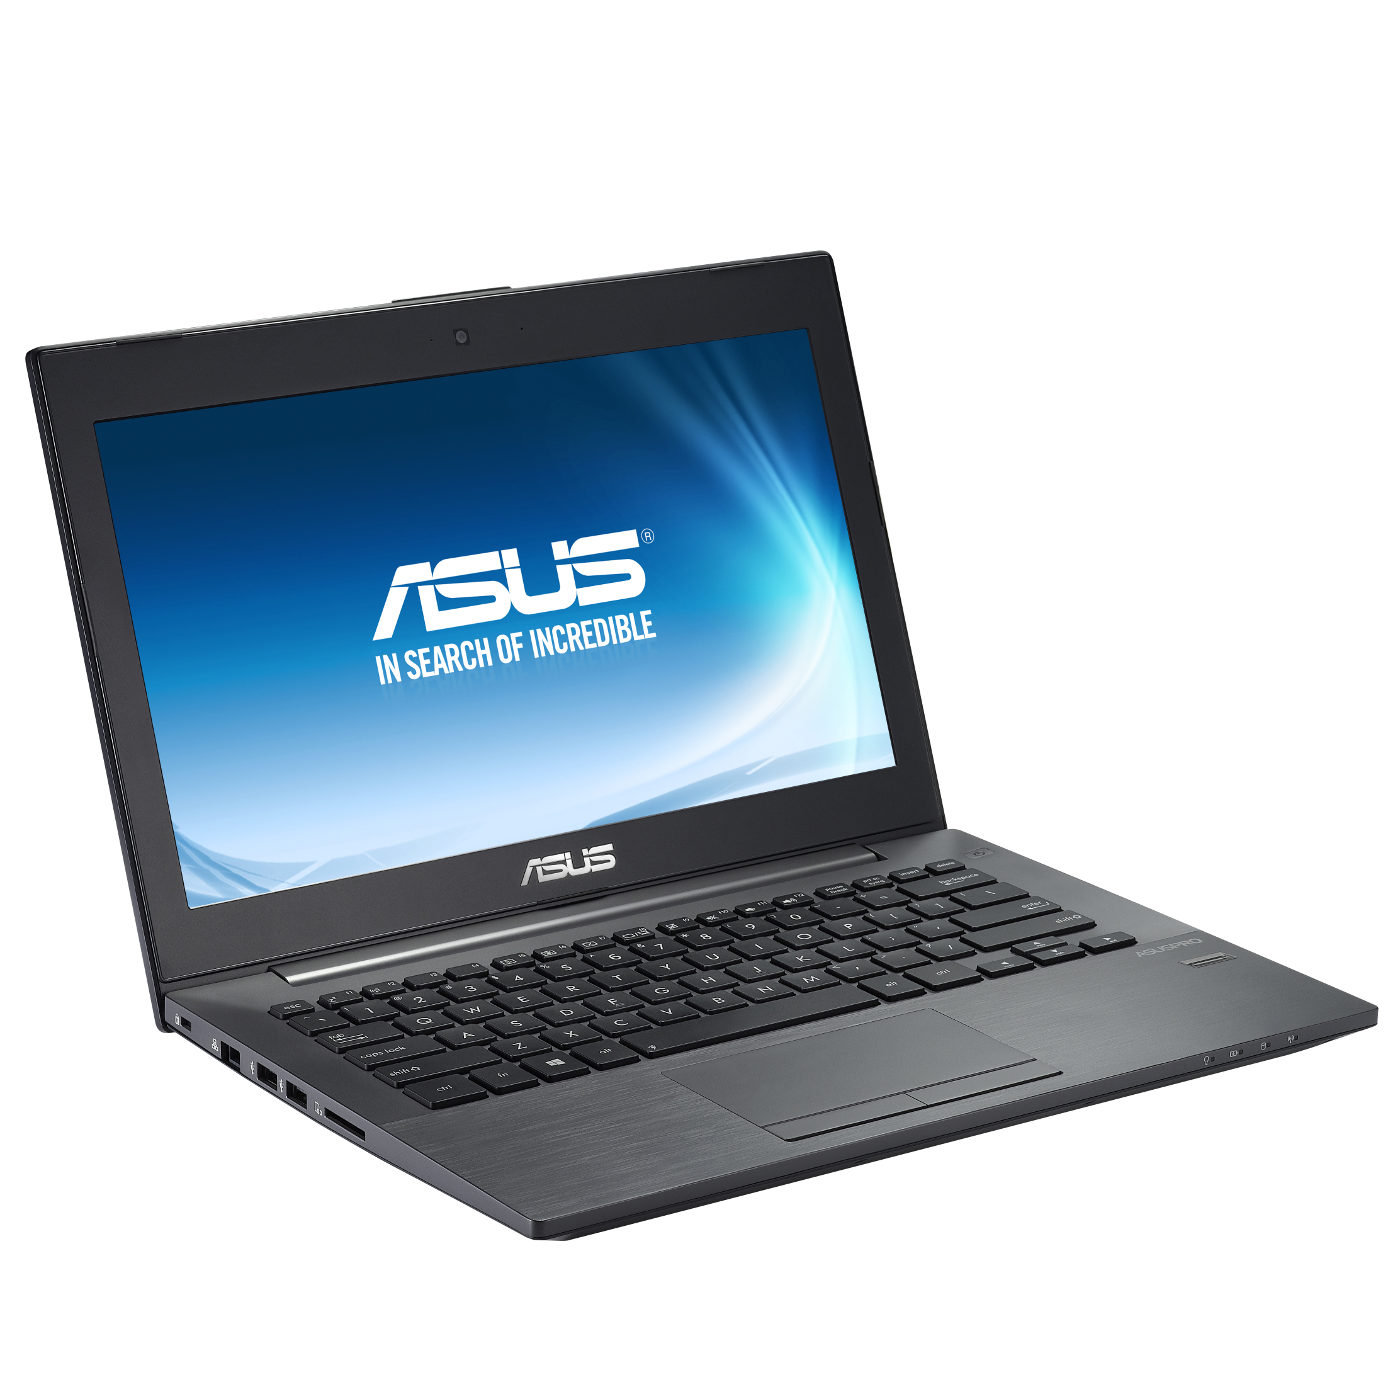 "PC portable ASUS PU301LA-RO123G Intel Core i5-4210U 4 Go 500 Go 13.3"" LED HD Wi-Fi N/Bluetooth Webcam Windows 7 Professionnel 64 bits + Windows 8 Pro 64 bits (garantie constructeur 2 ans)"